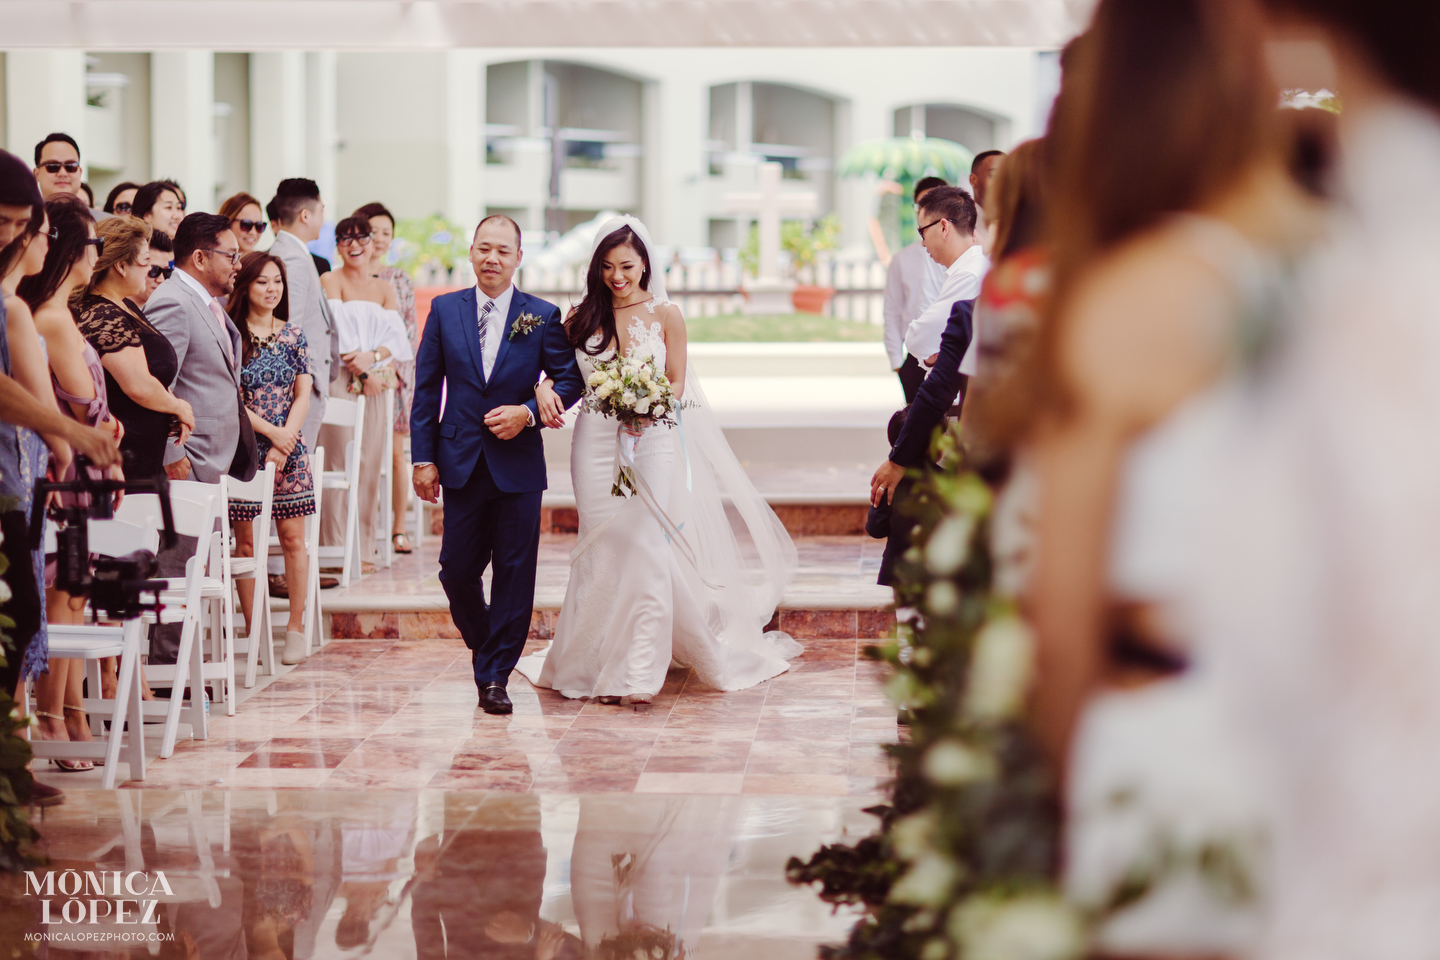 Hyatt Ziva Cancun Wedding by Monica Lopez Photograpy